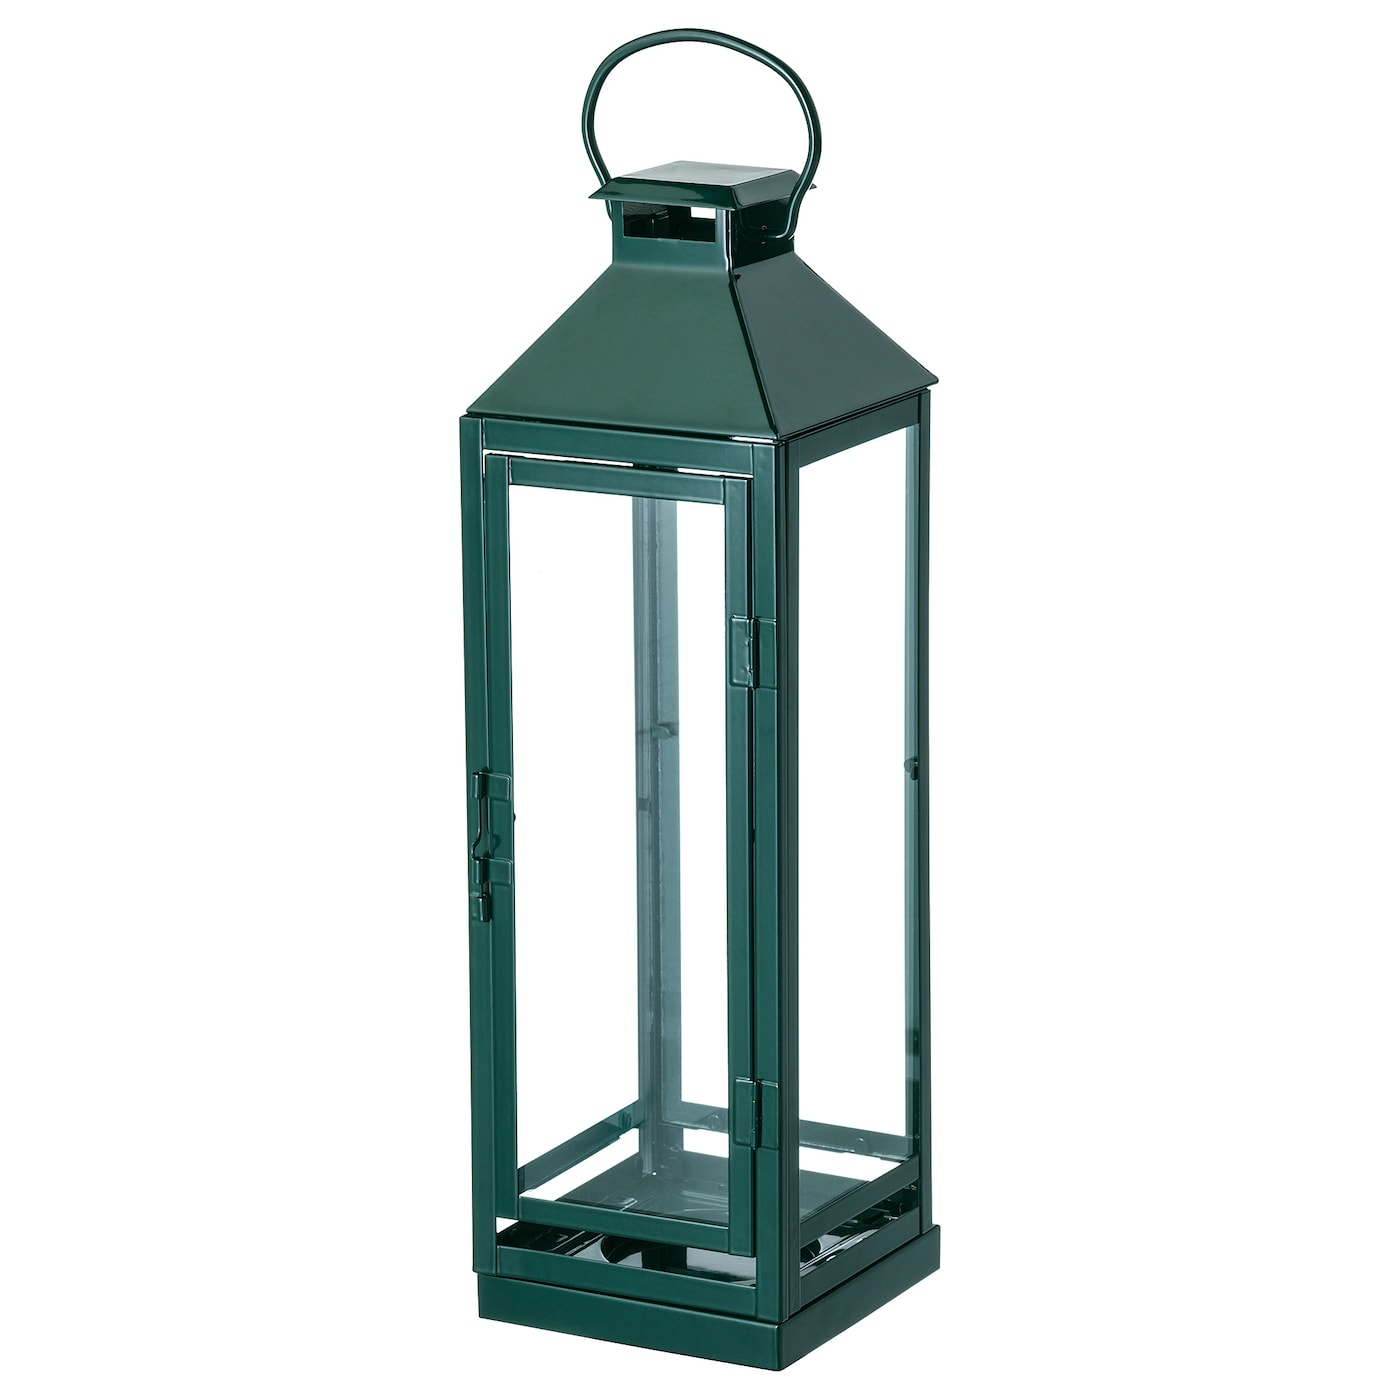 IKEA VINTER 2018 lantern for block candle Suitable for both indoor and outdoor use.